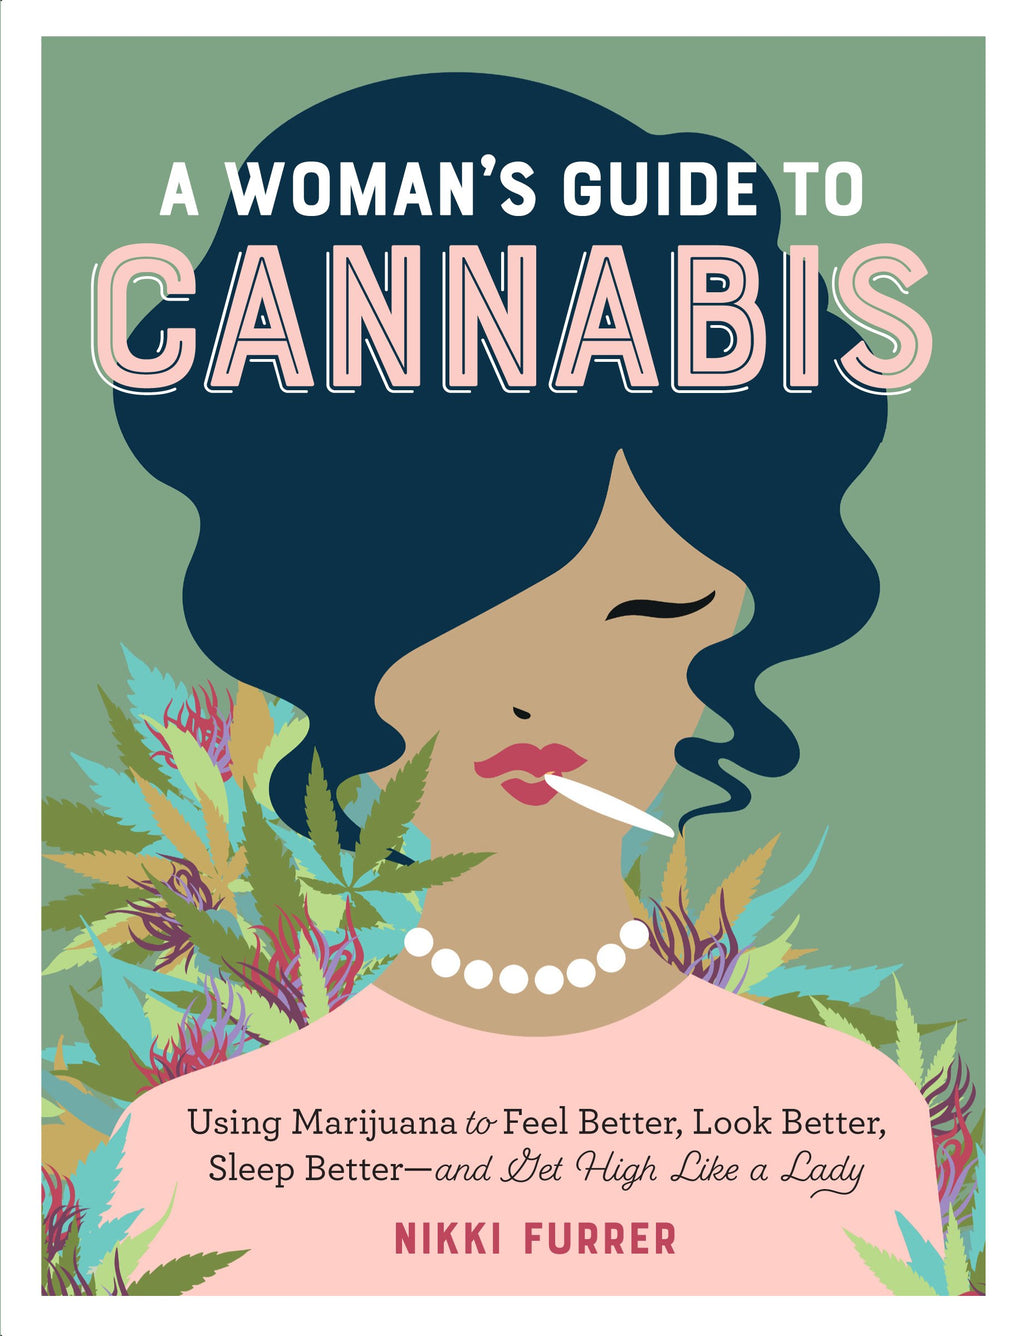 Woman's Guide to Cannabis by Nikki Furrer